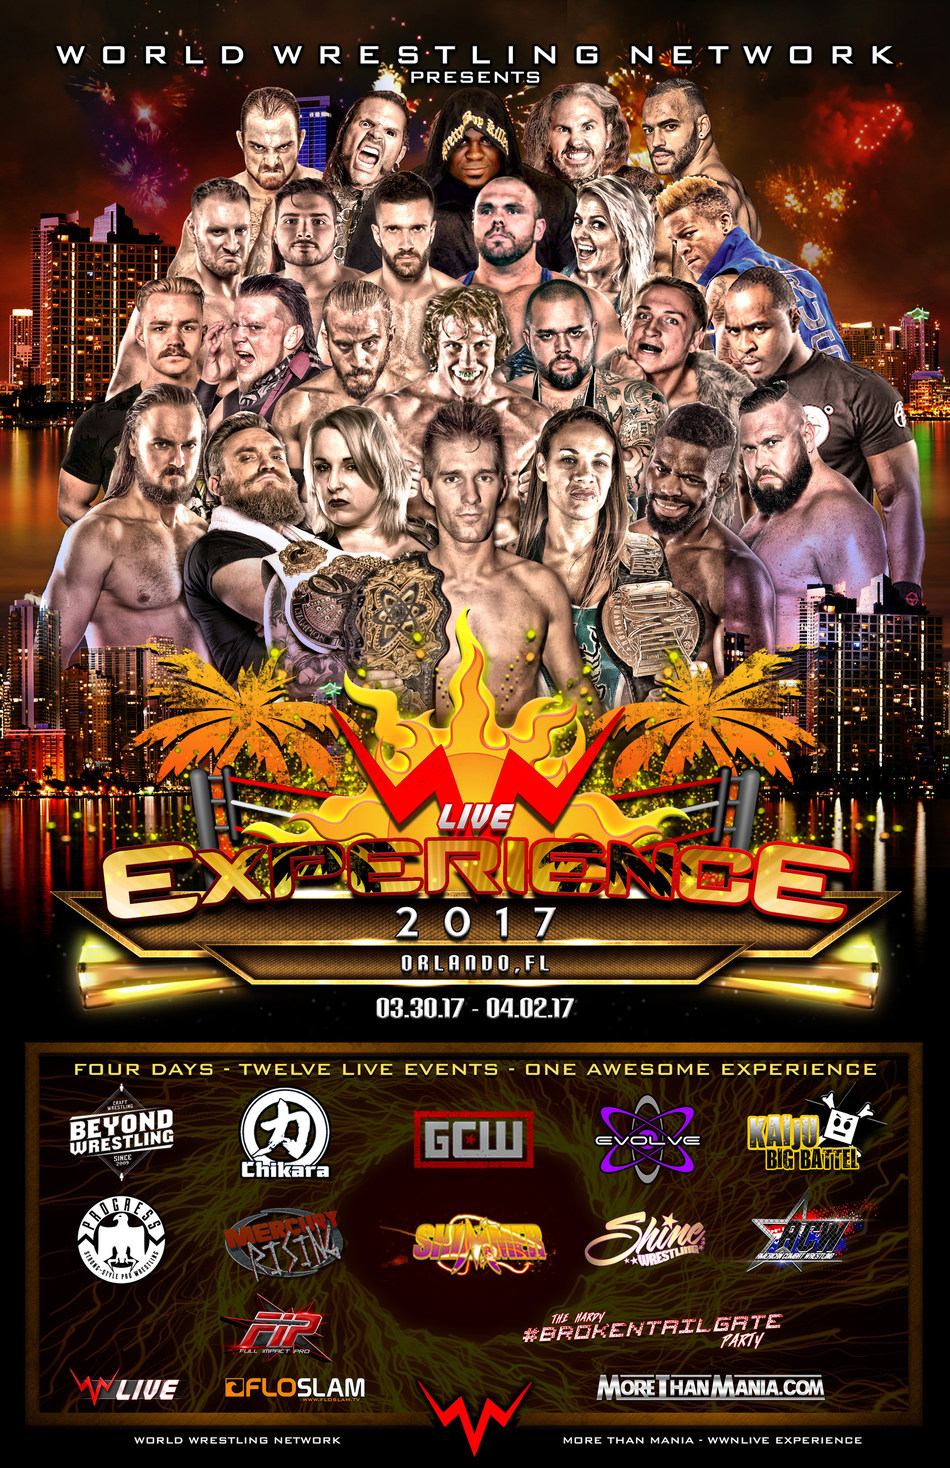 The WWNLive Experience invades Orlando on WrestleMania weekend. It will take place from March 30th-April 2nd at Orlando Live Events (6405 S US Hwy 17-92, Fern Park, FL) and feature 12 pro wrestling brands, over 100 talents and 12 live events. In addition, The Hardy #BrokenTailgate will take place on Sunday, April 2nd from 10AM-6PM ED in downtown Orlando, less than 1 mile from the site of WrestleMania. Visit www.MoreThanMania.com for tickets and more information.